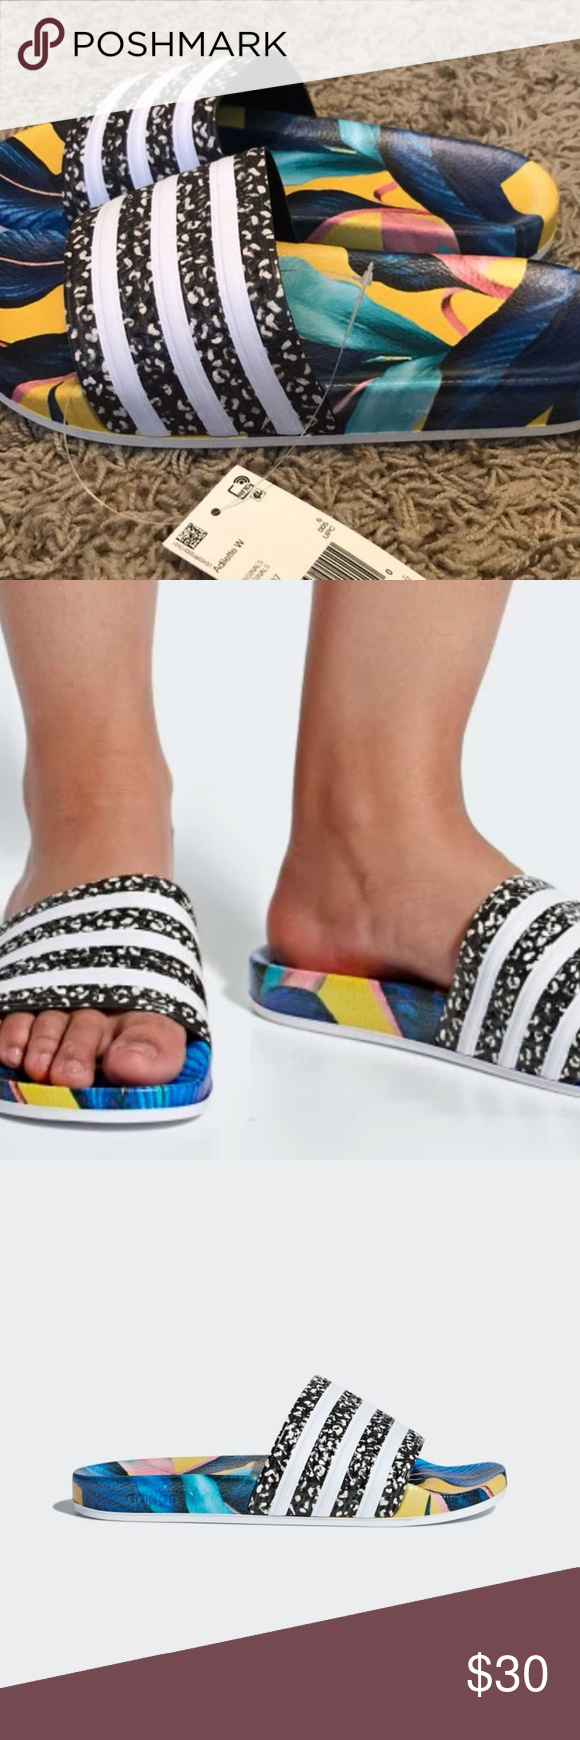 f2bef6e0a024 Womens Adidas adilette slides - new! WAUW! Talk about standing out from the  crowd - these slides are amazing. AN ADILETTE SLIDE WITH A VIBRANT TROPICAL  LEAF ...